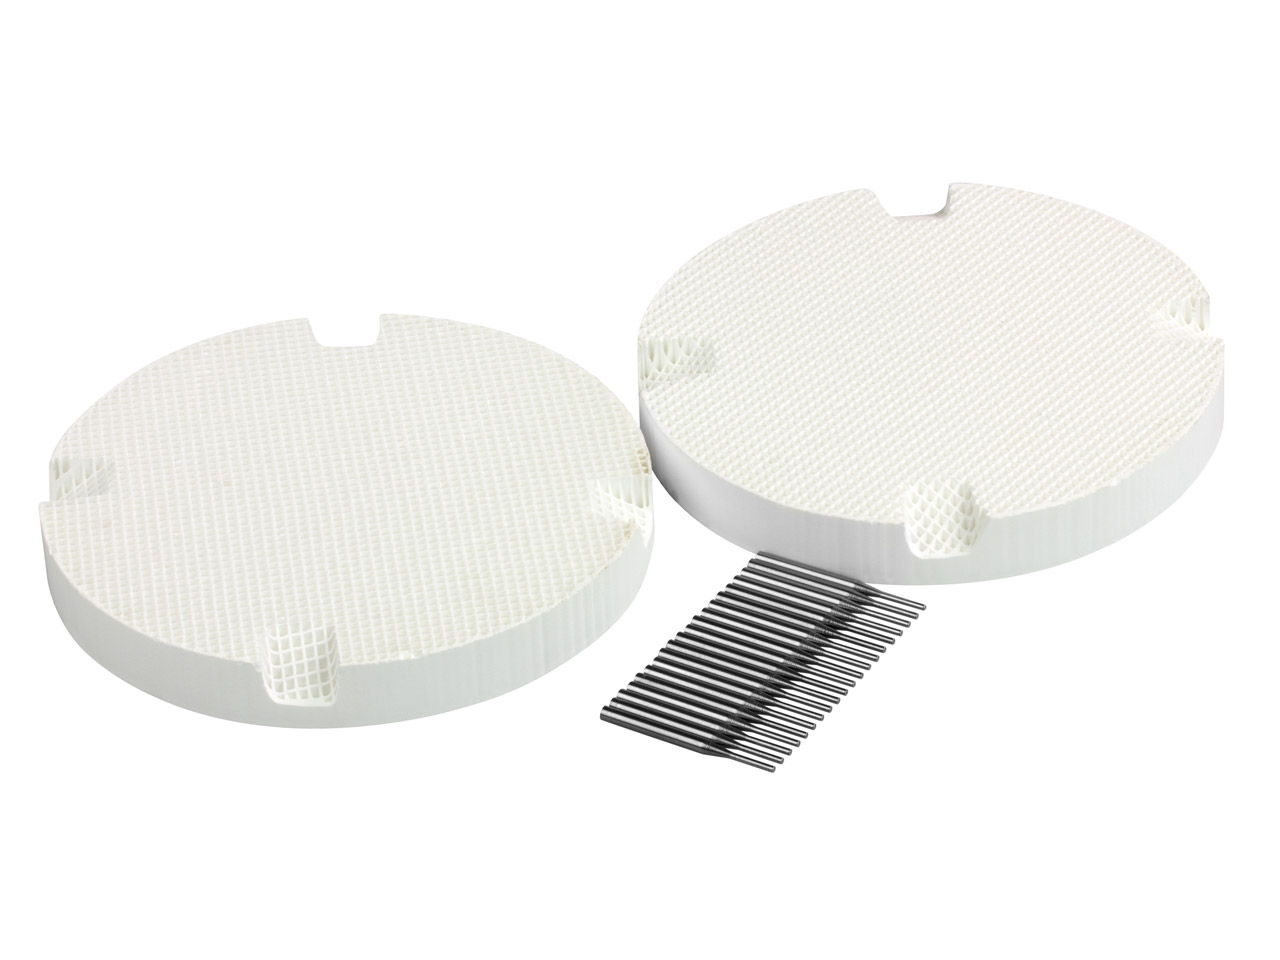 Round Honeycomb Soldering Board    Small Hole Pack of 2 With 20 Metal Pins